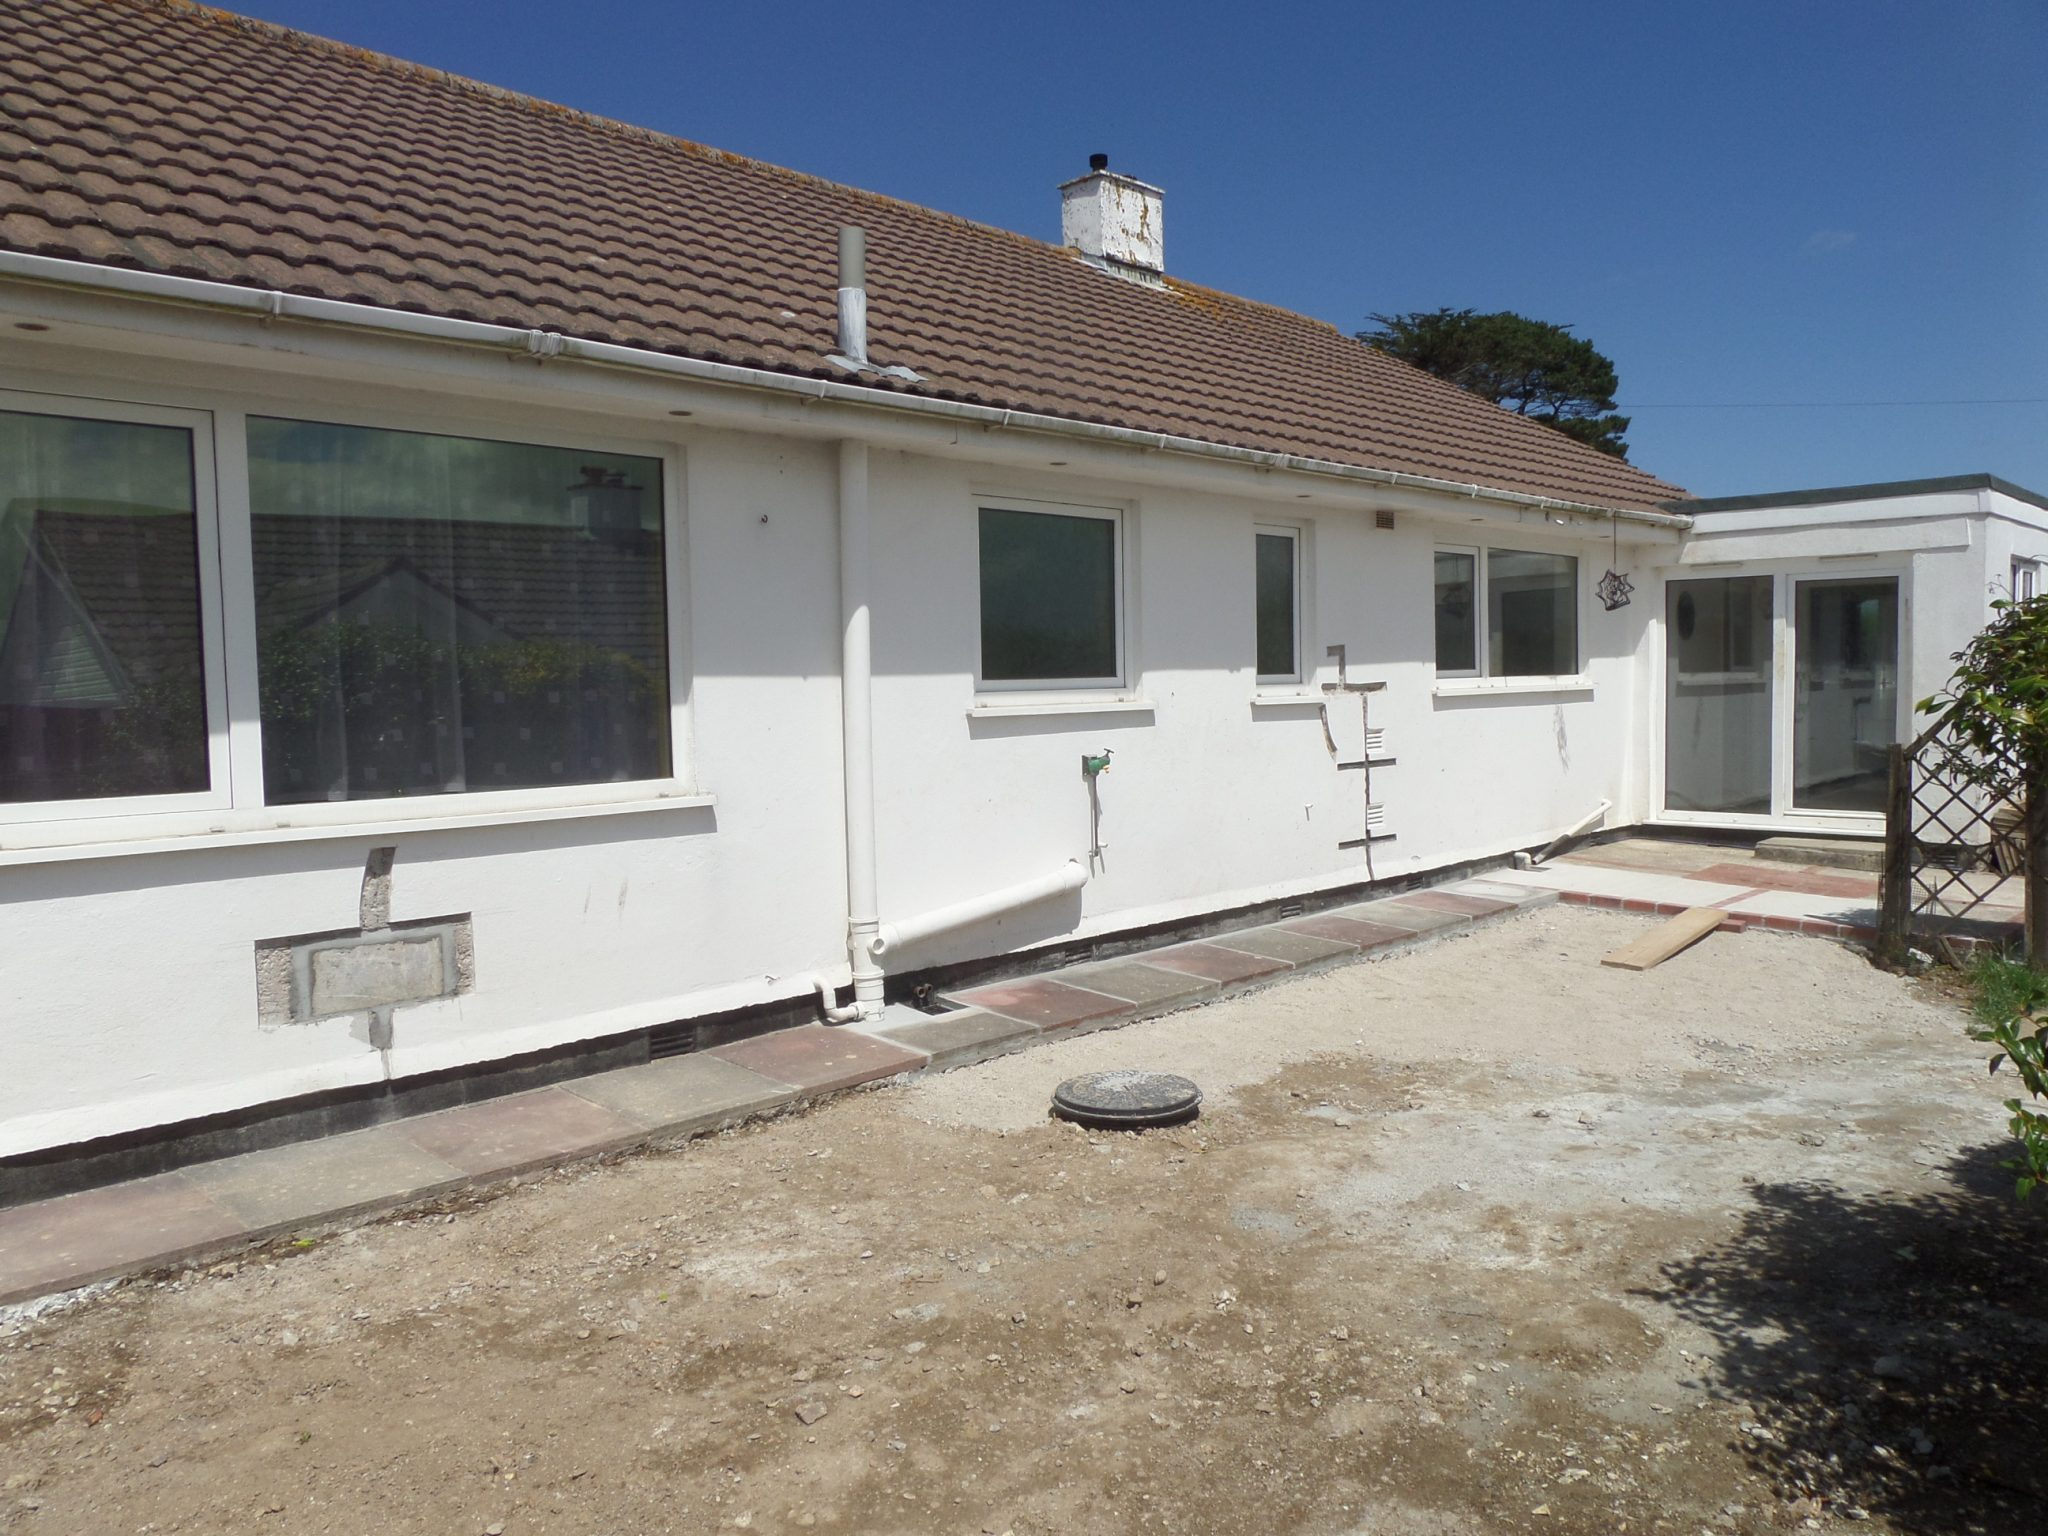 Excavation completed for finishes